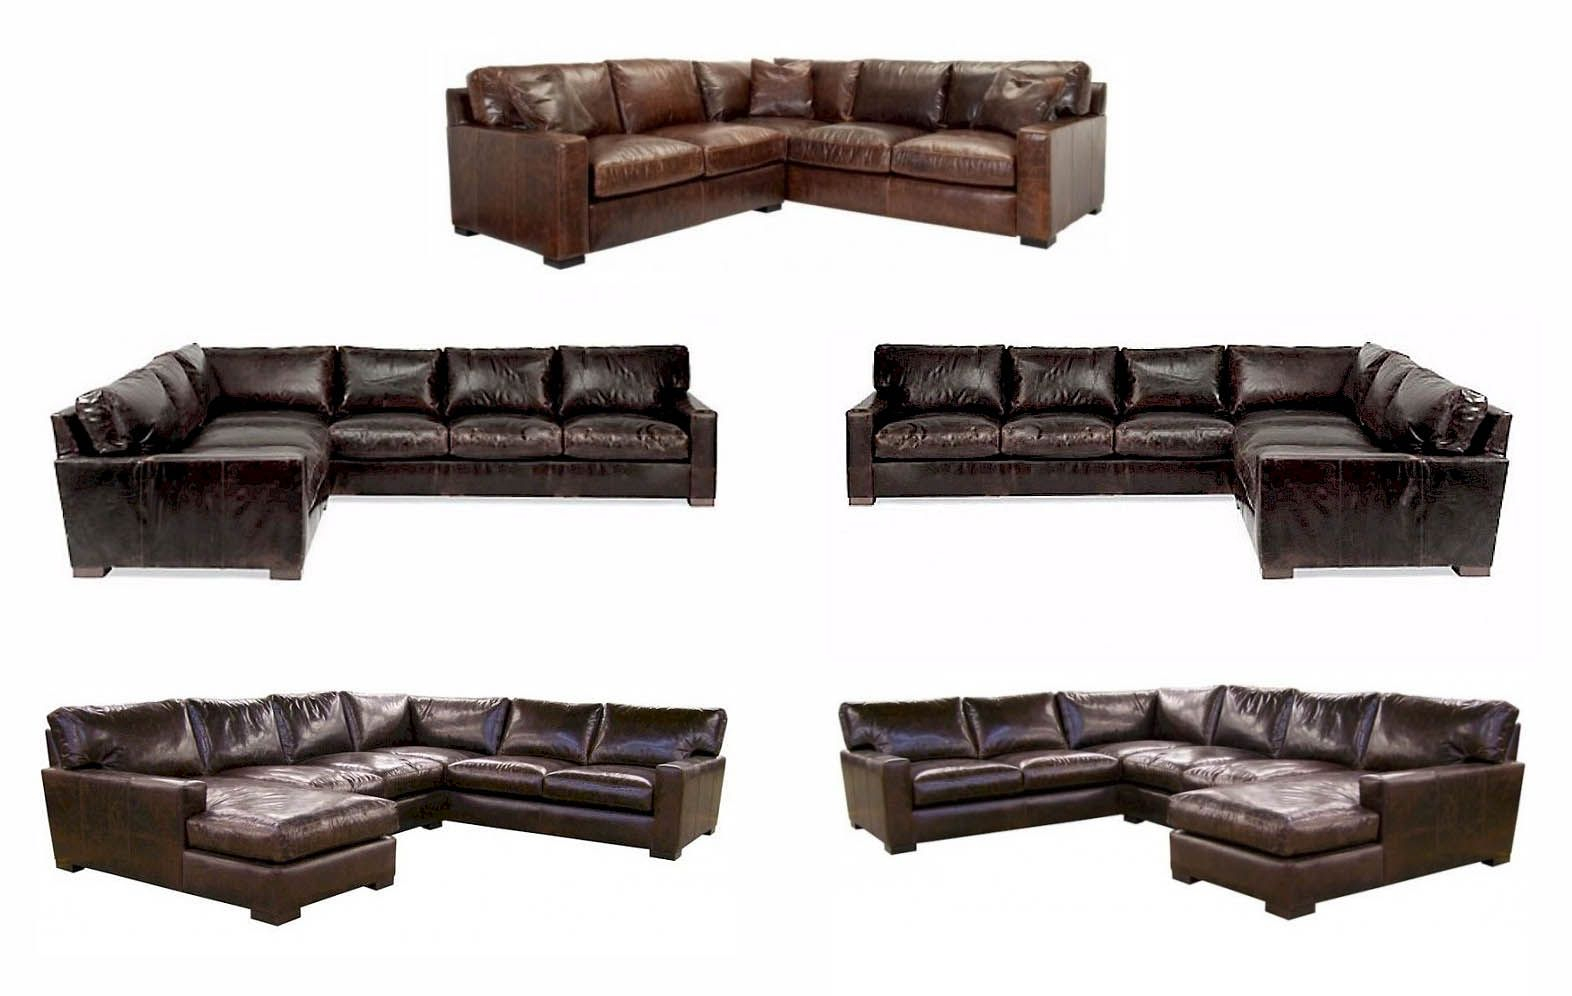 Napa Maxwell Oversized Seating Leather Sectional Bedroom for dimensions 1572 X 996